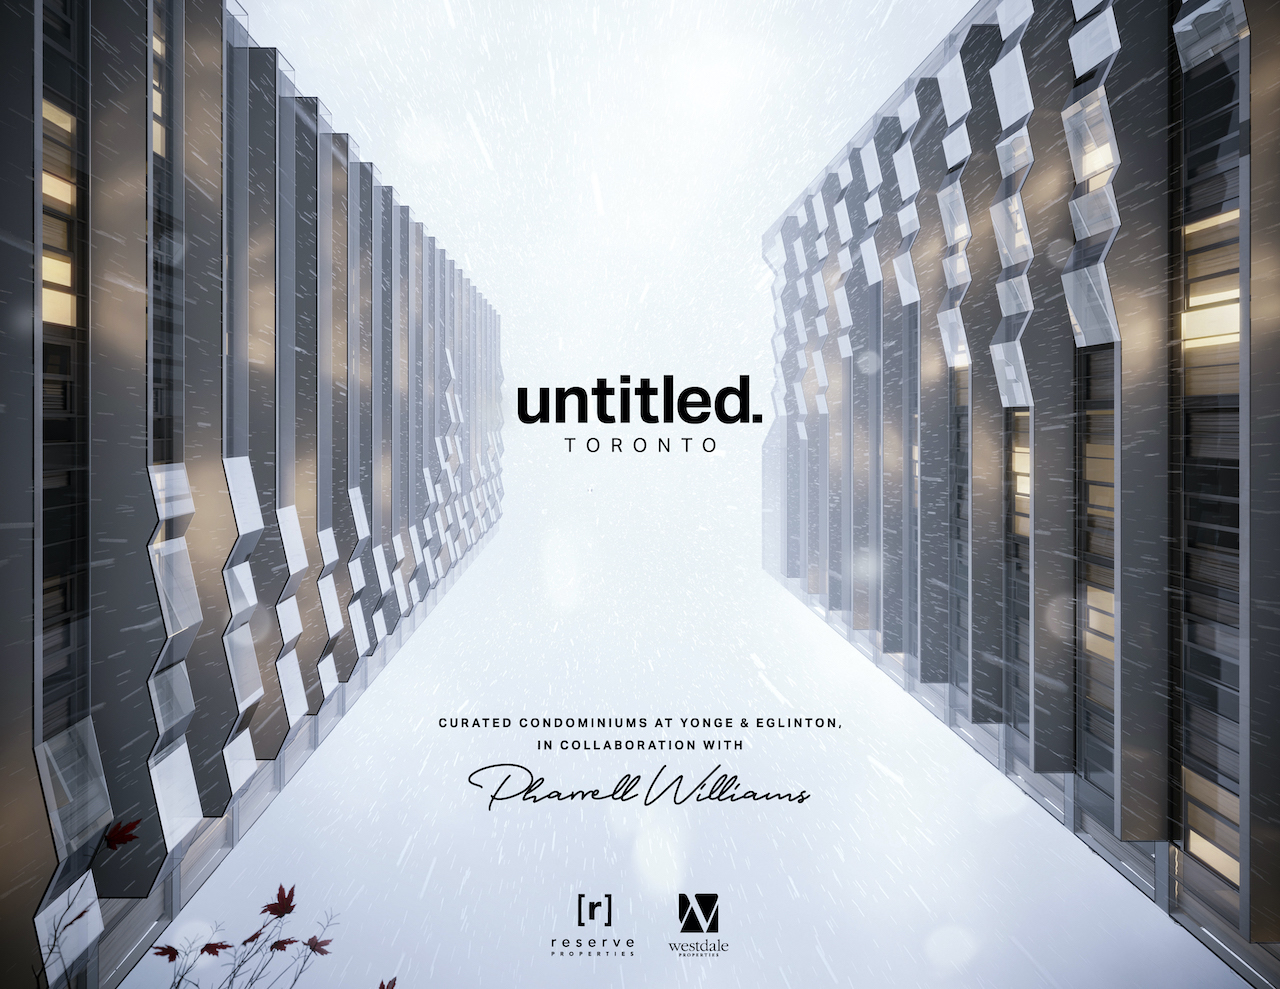 Exterior rendering of Untitled Toronto Condos with logo and Pharrell Williams signature.